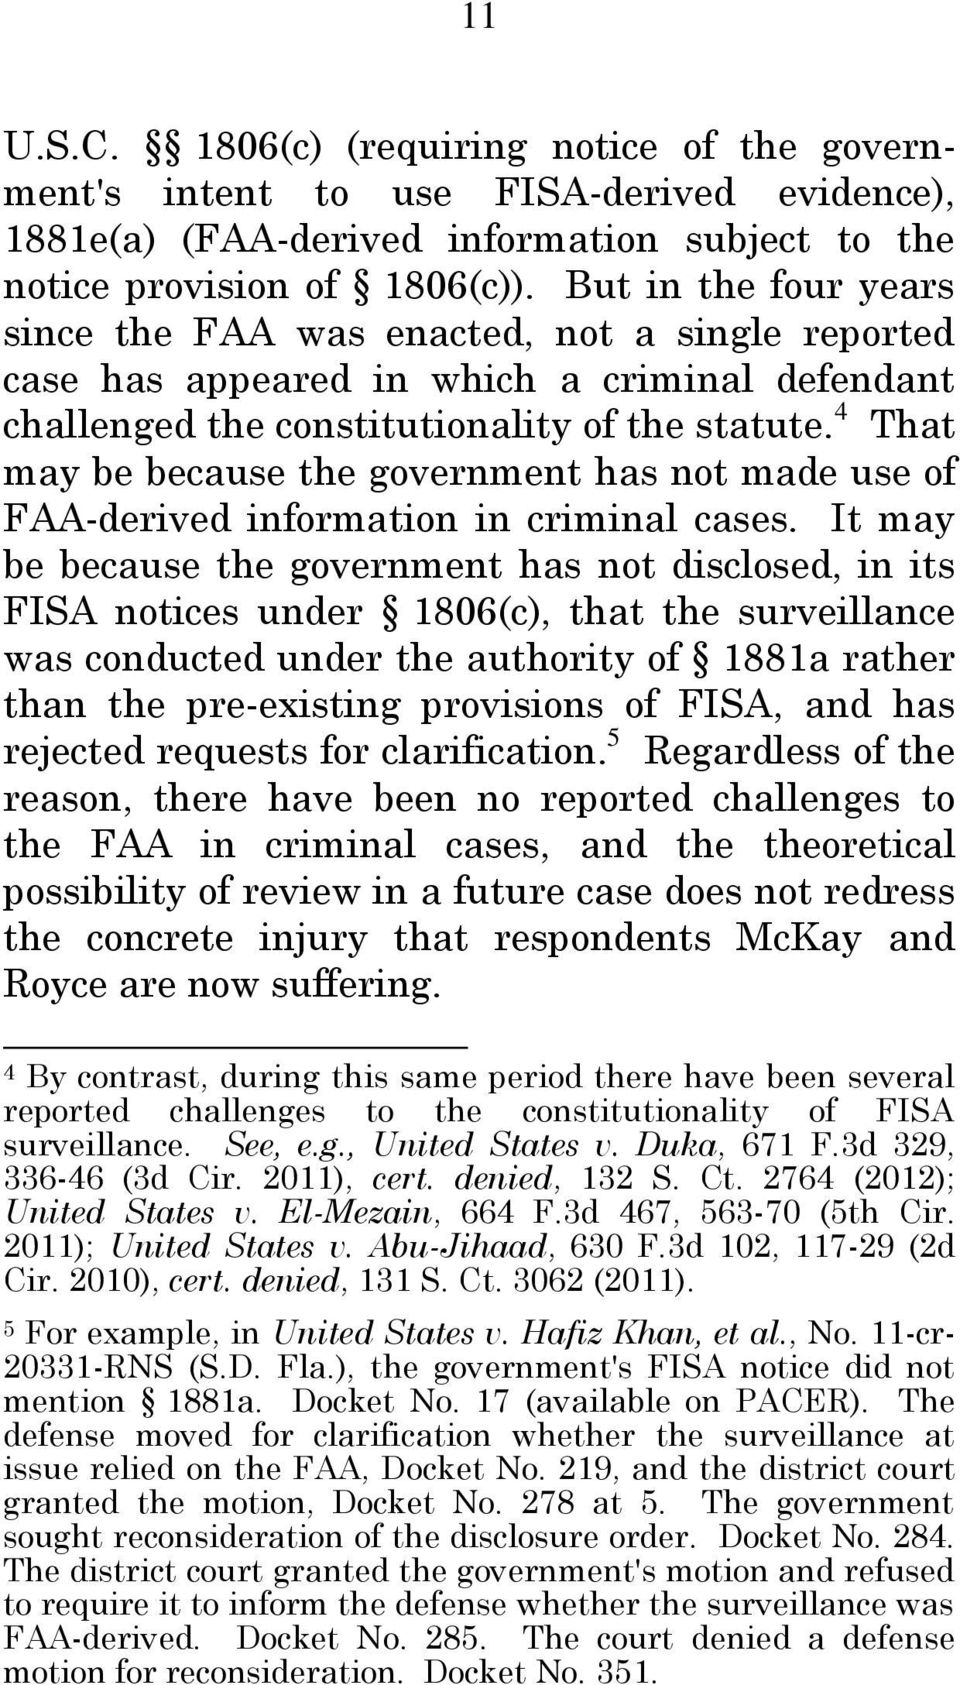 4 That may be because the government has not made use of FAA-derived information in criminal cases.